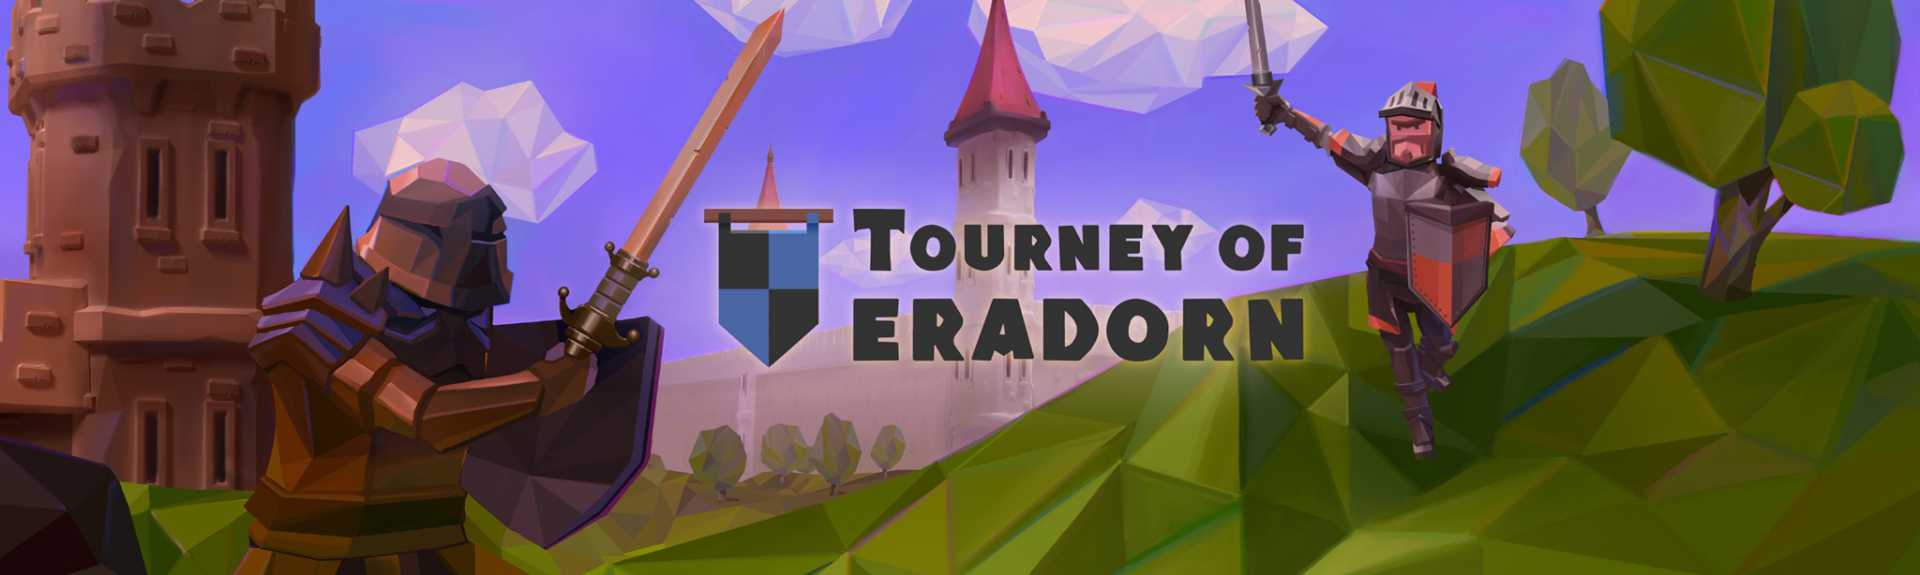 Tourney of Eradorn